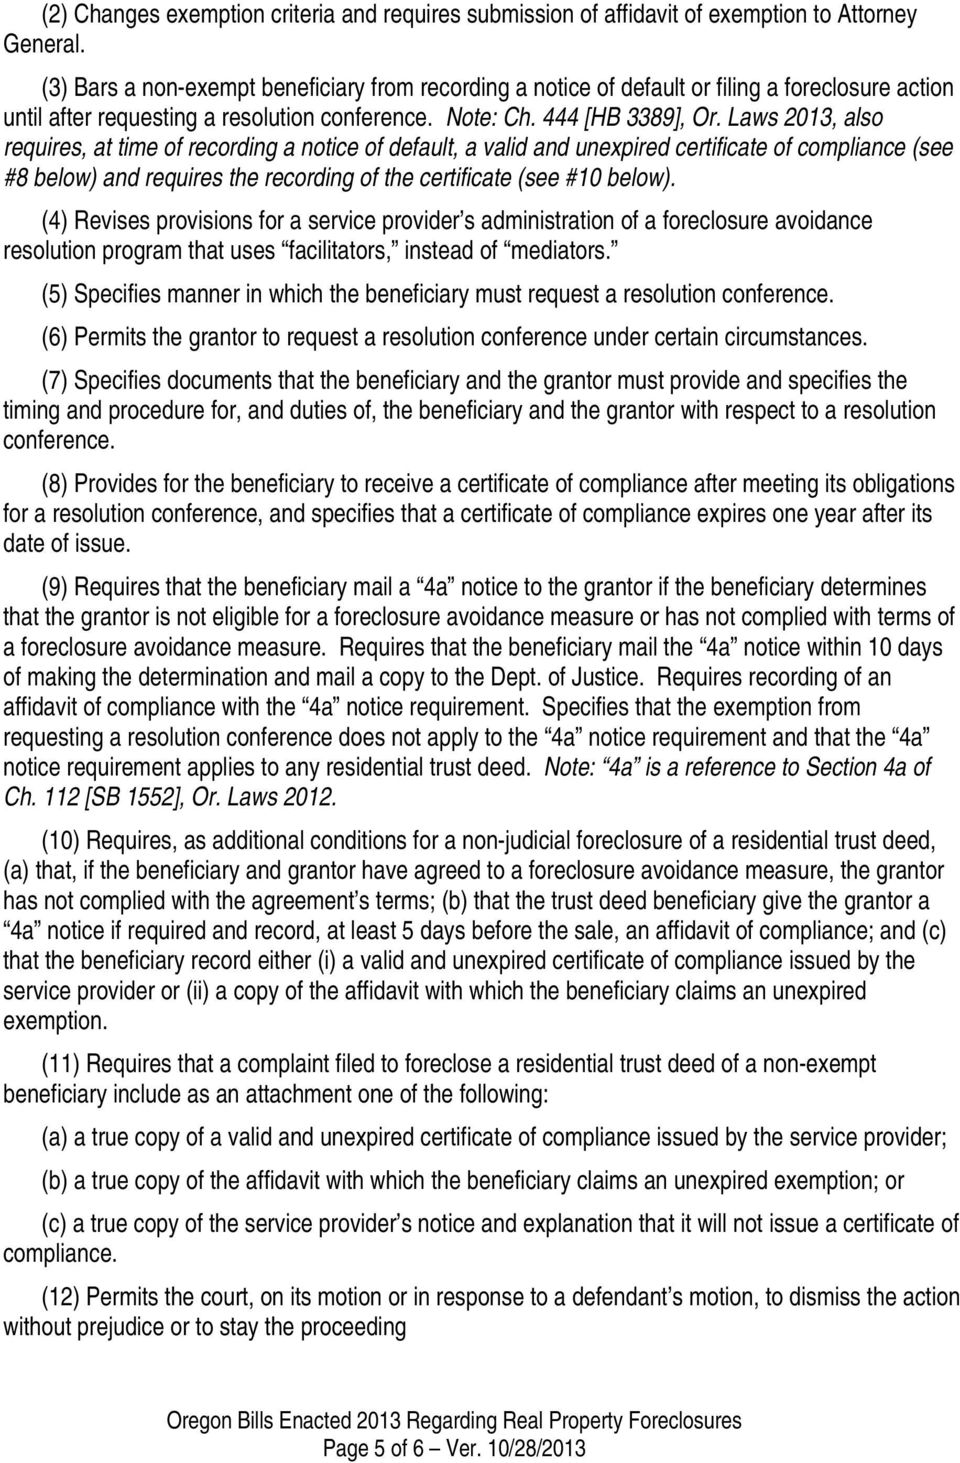 Laws 2013, also requires, at time of recording a notice of default, a valid and unexpired certificate of compliance (see #8 below) and requires the recording of the certificate (see #10 below).